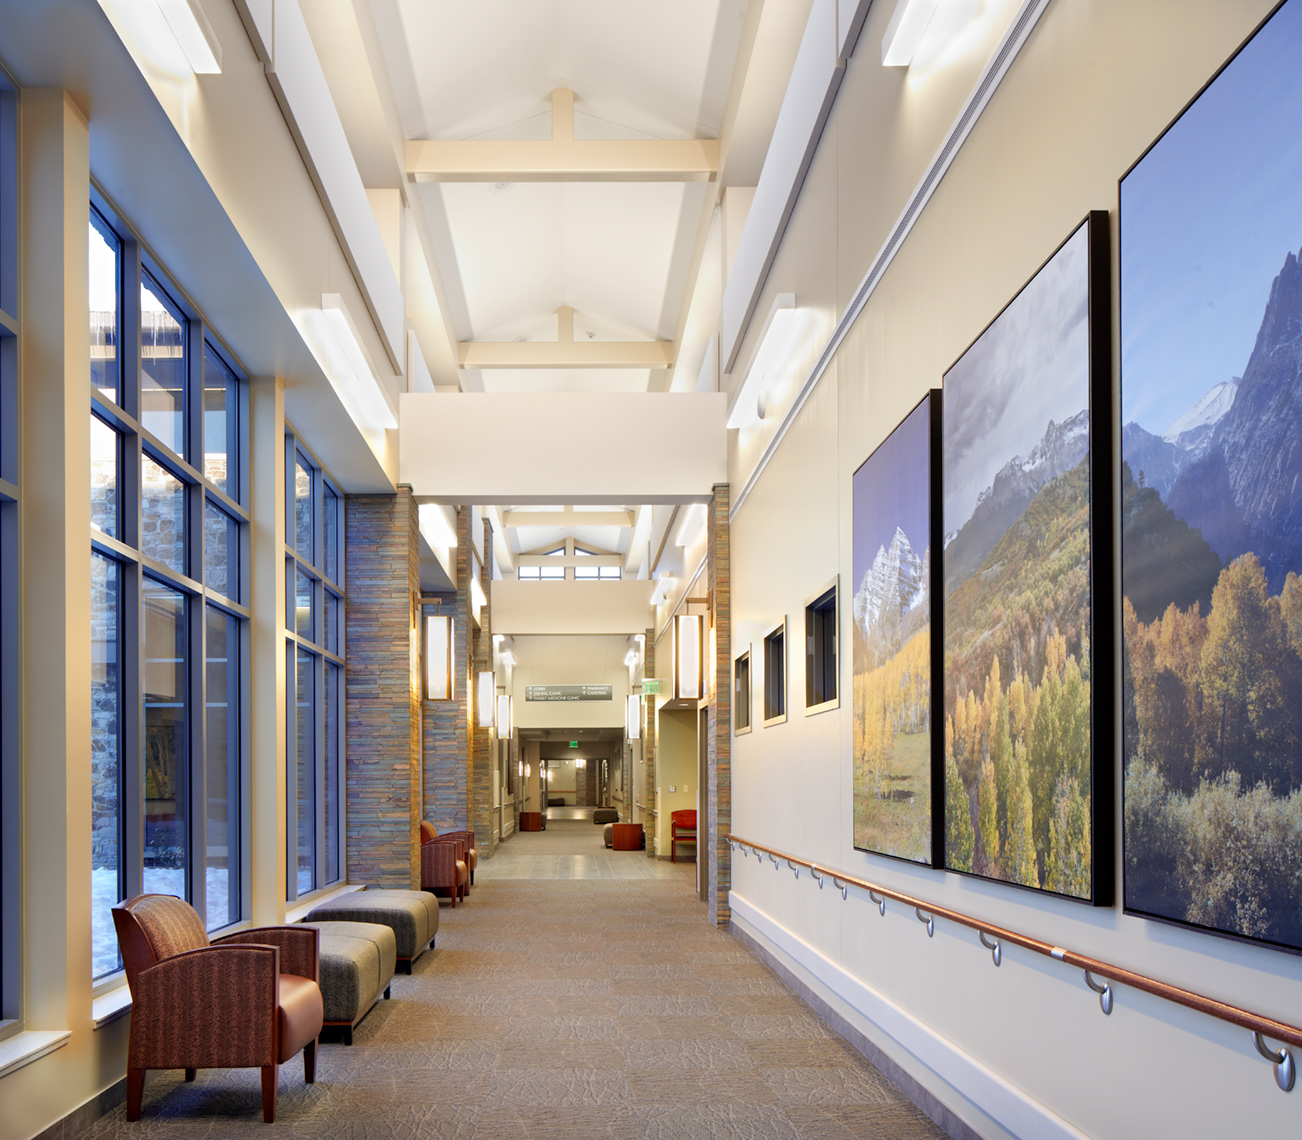 David Patterson Photography/Photography of Architecture+ Interiors, Health Care Facilities, Colorado